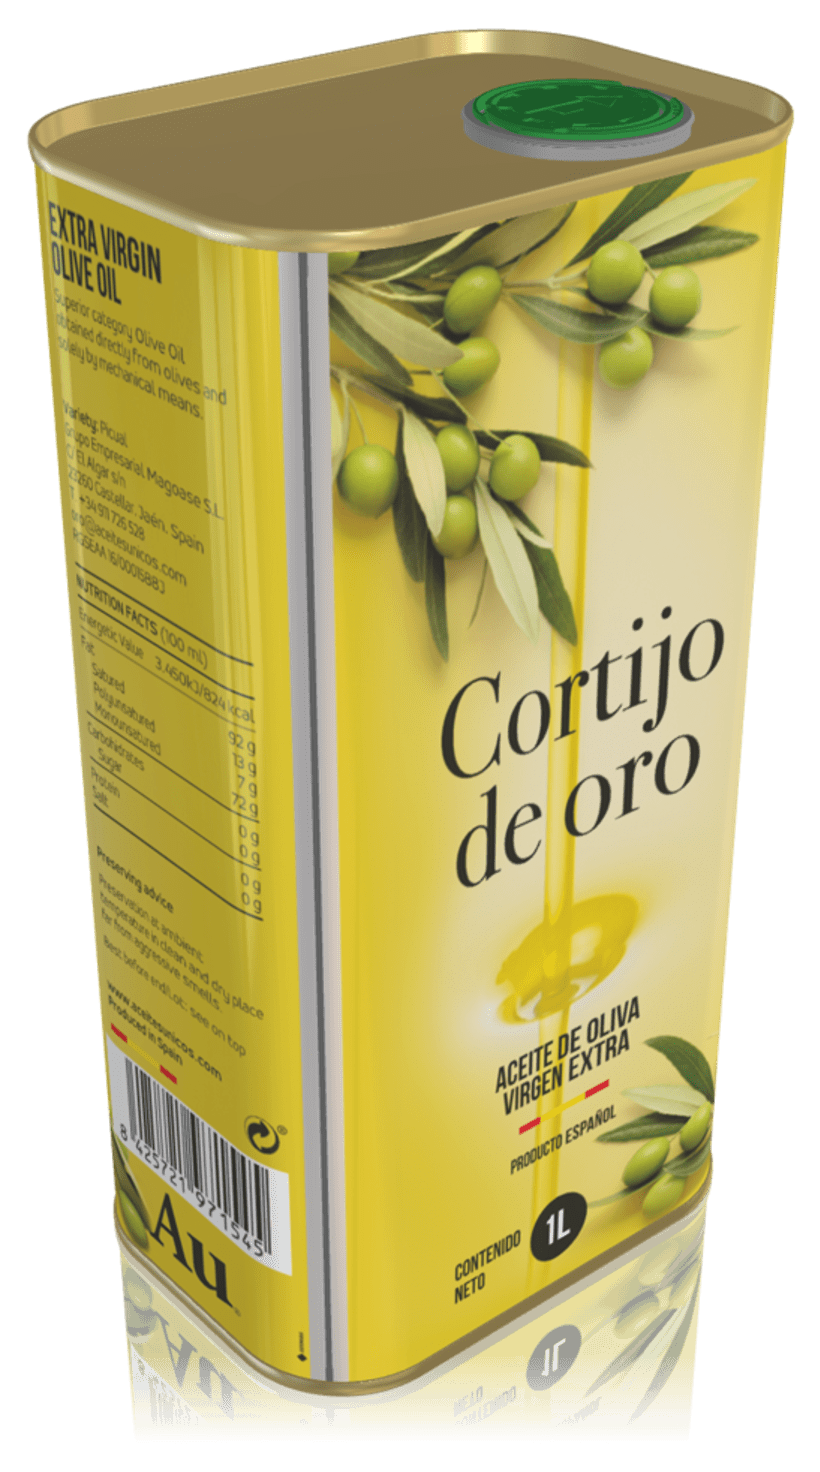 Packaging Cortijo de Oro 6